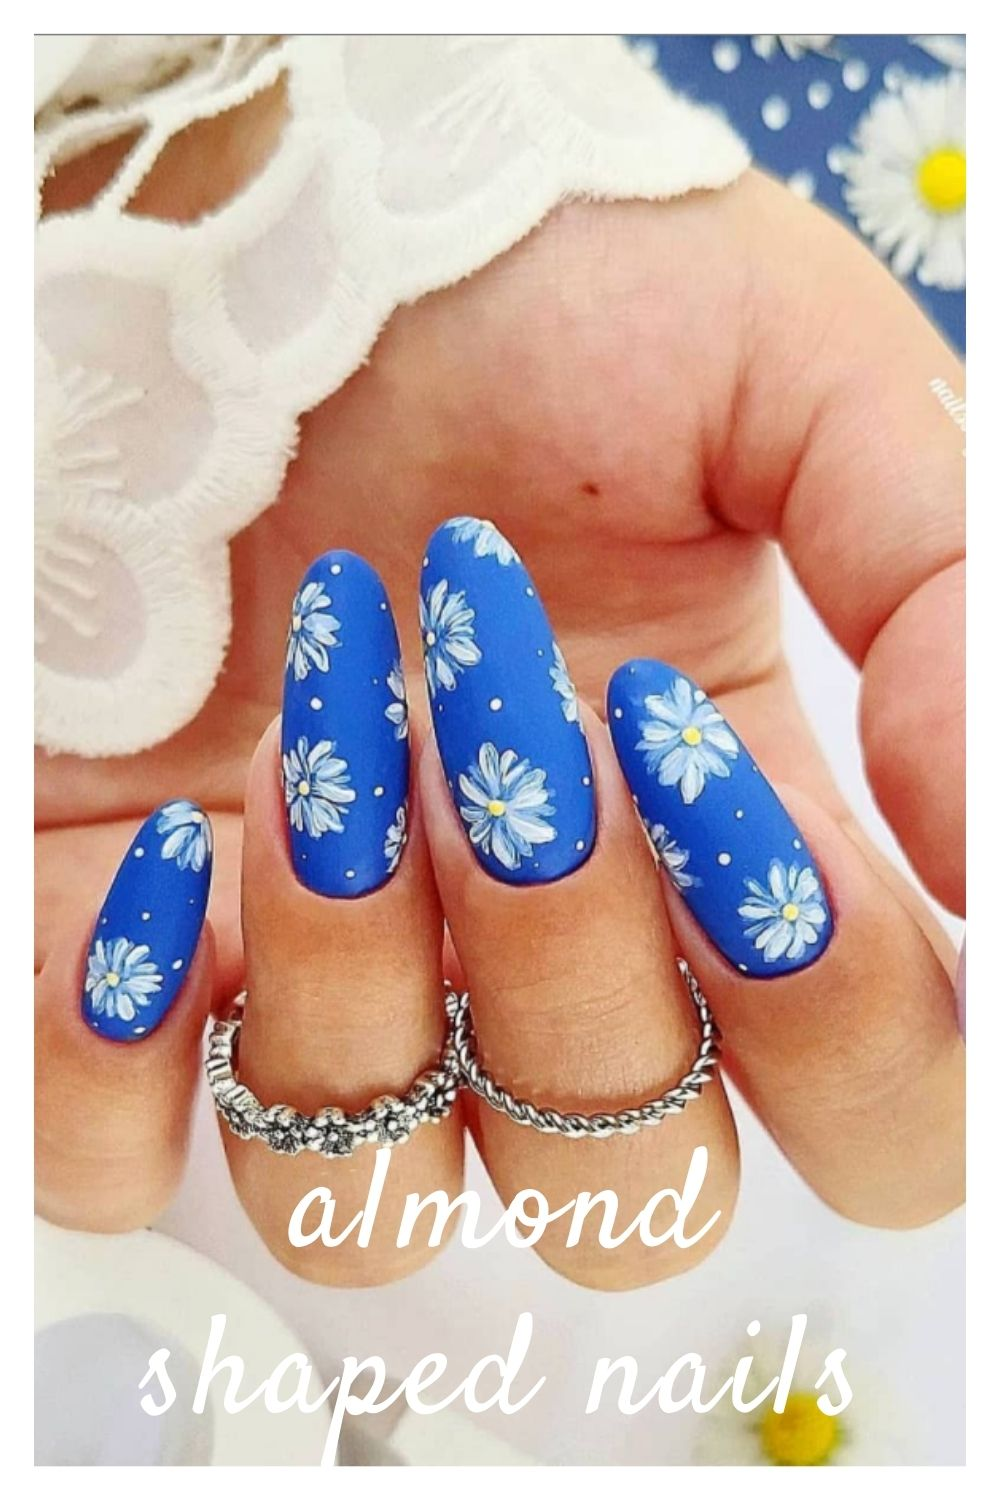 Blue almond nails with flowers